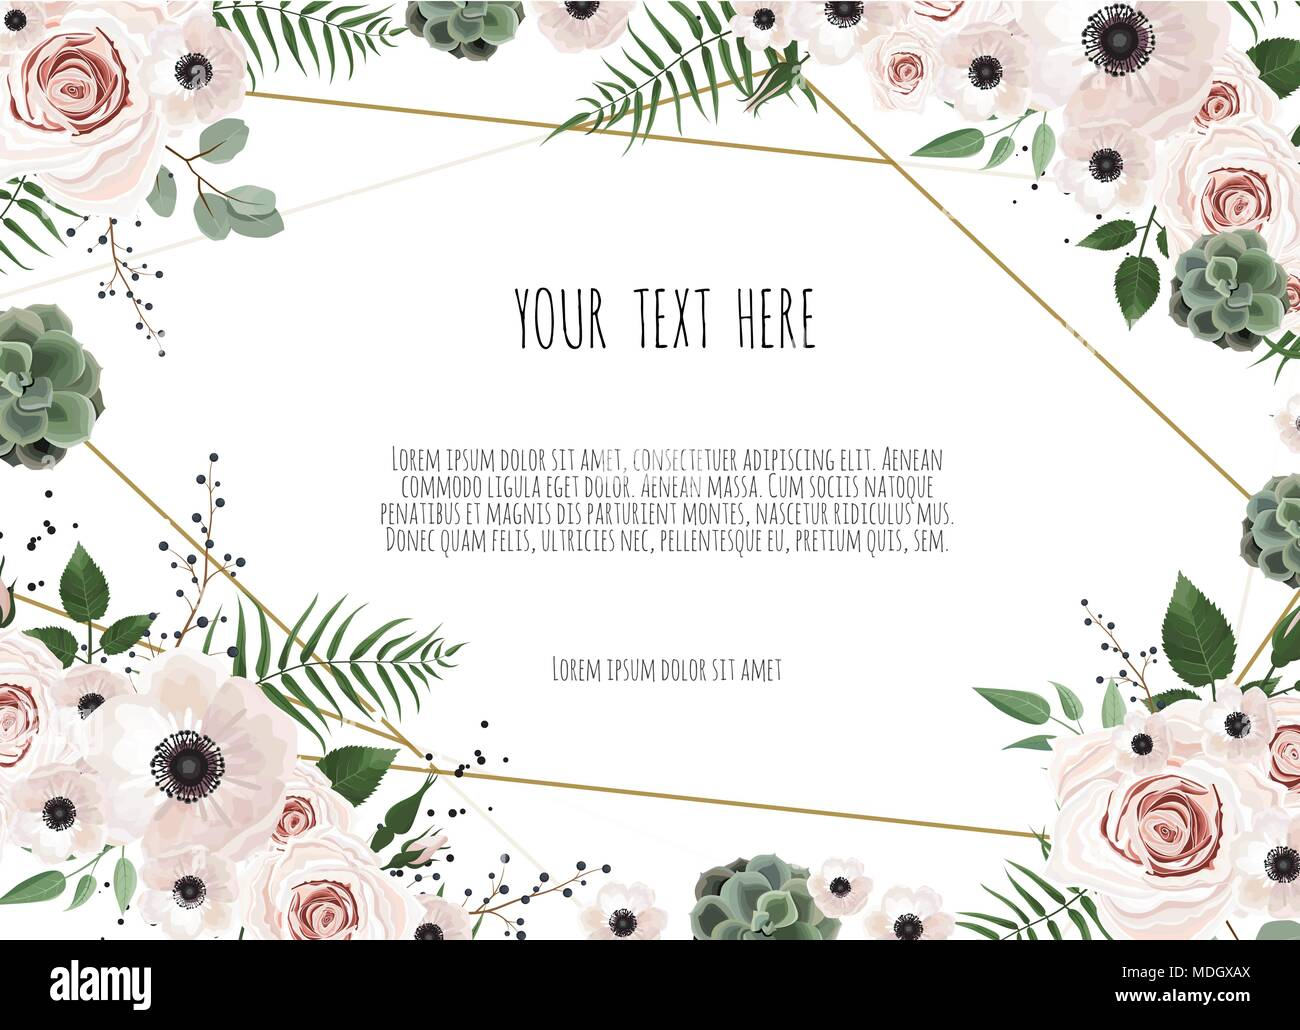 Wedding Invitation Card With Abstract Floral Background Stock